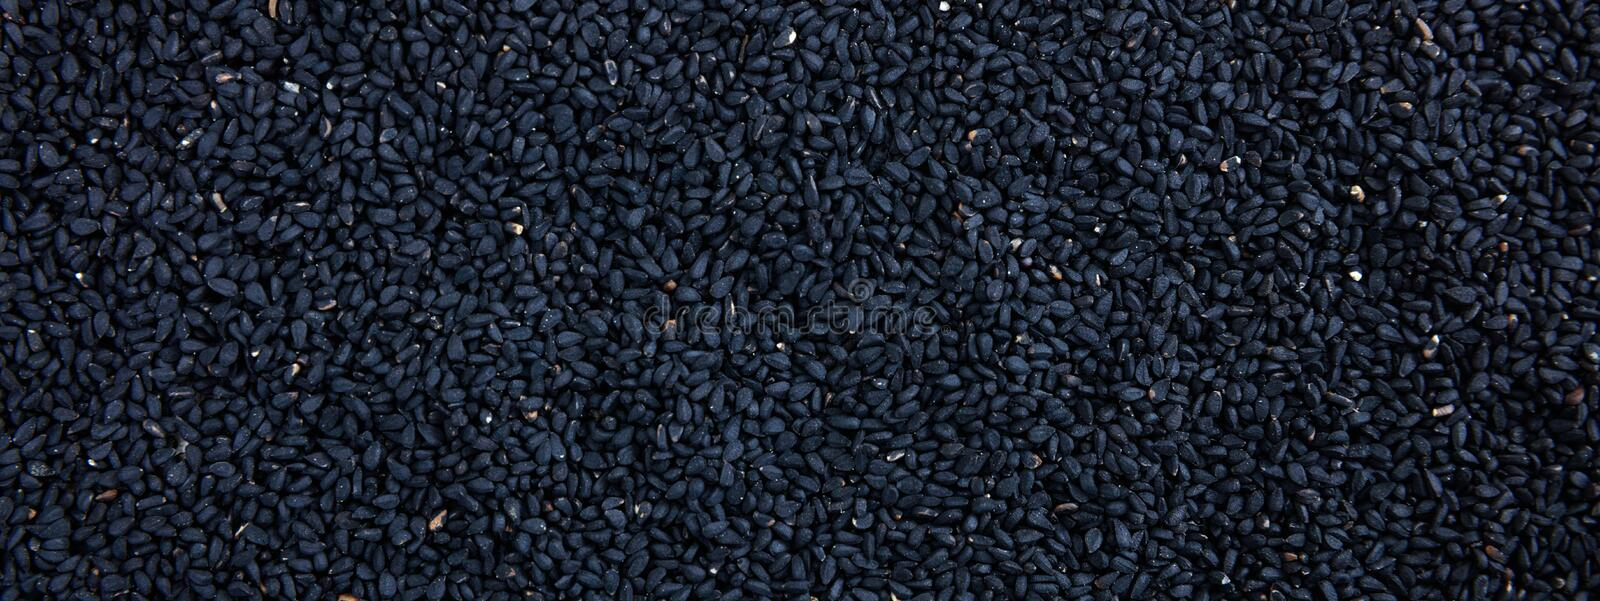 Raw sesame seeds black color full frame background, banner. Raw sesame dry grains black color full frame background, banner. Close up top view royalty free stock photography